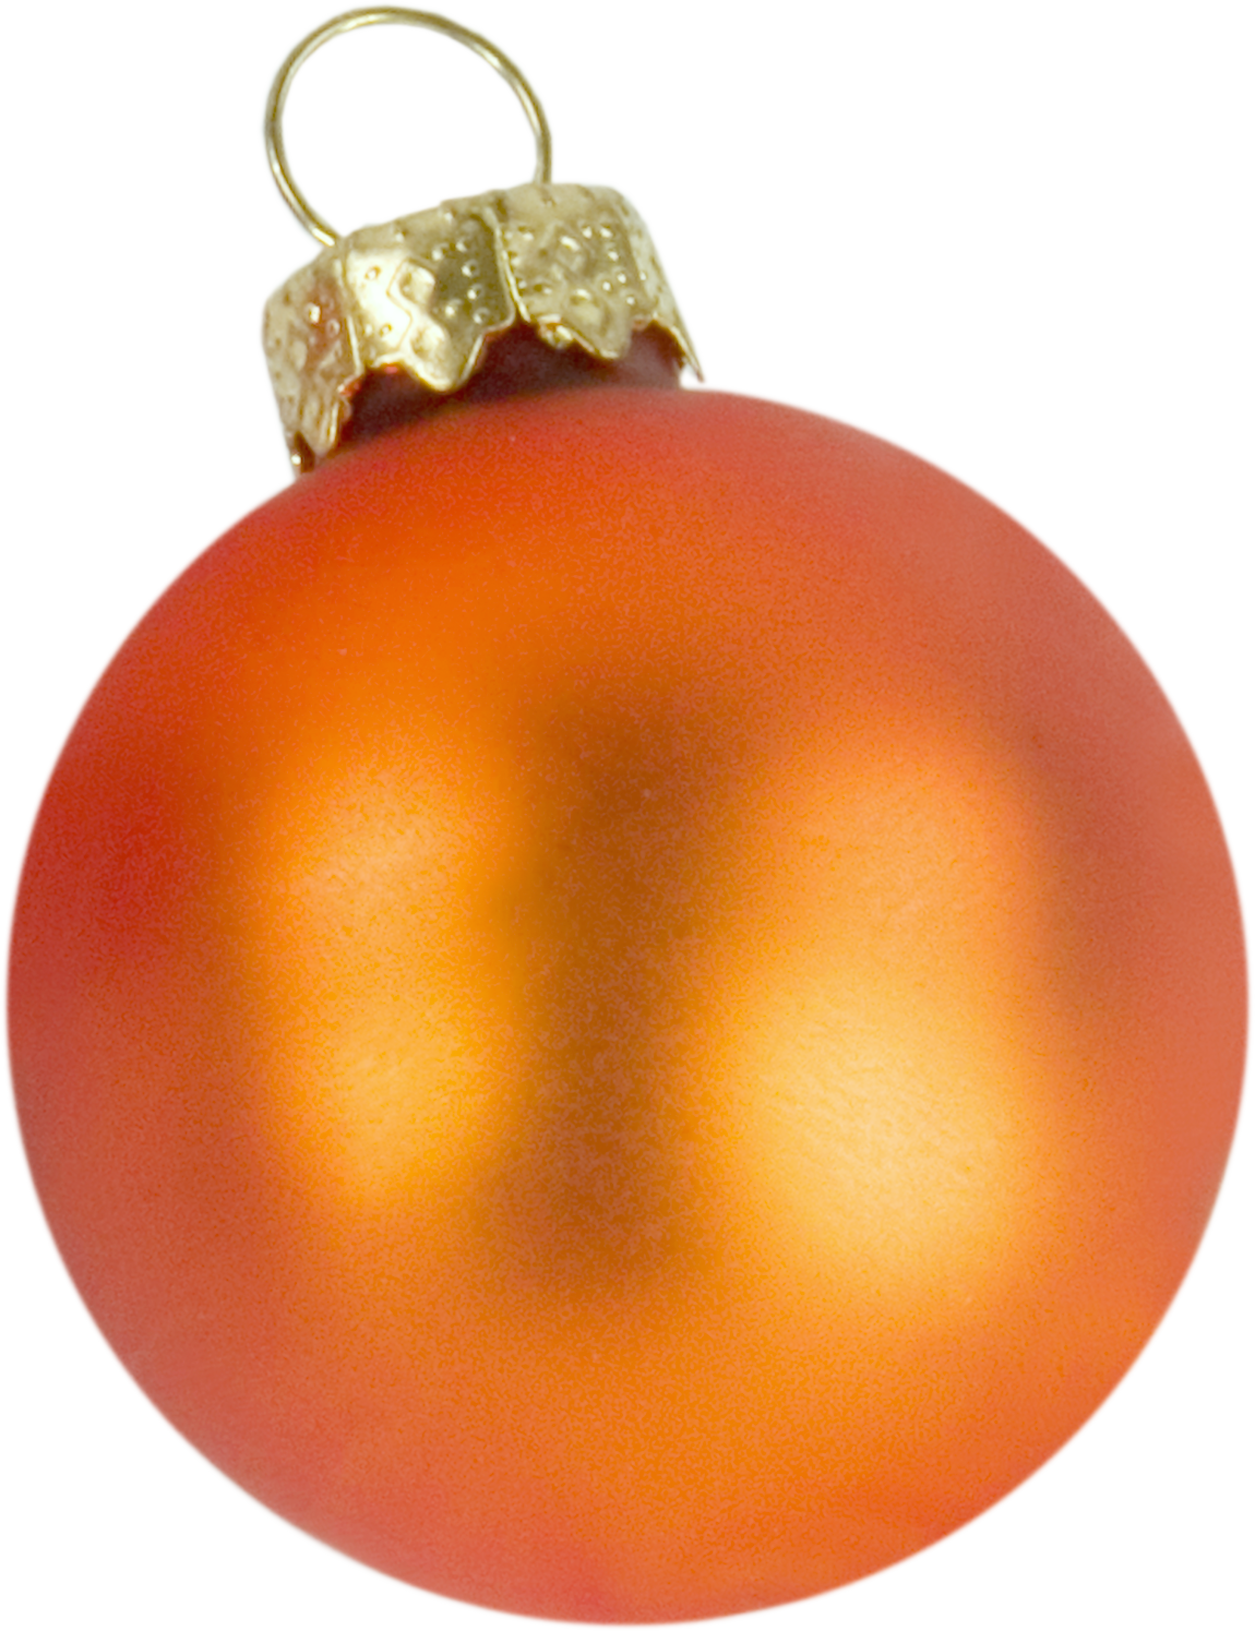 Christmas ornament clipart orange. Christmas ornament clipart orange. Transparent free